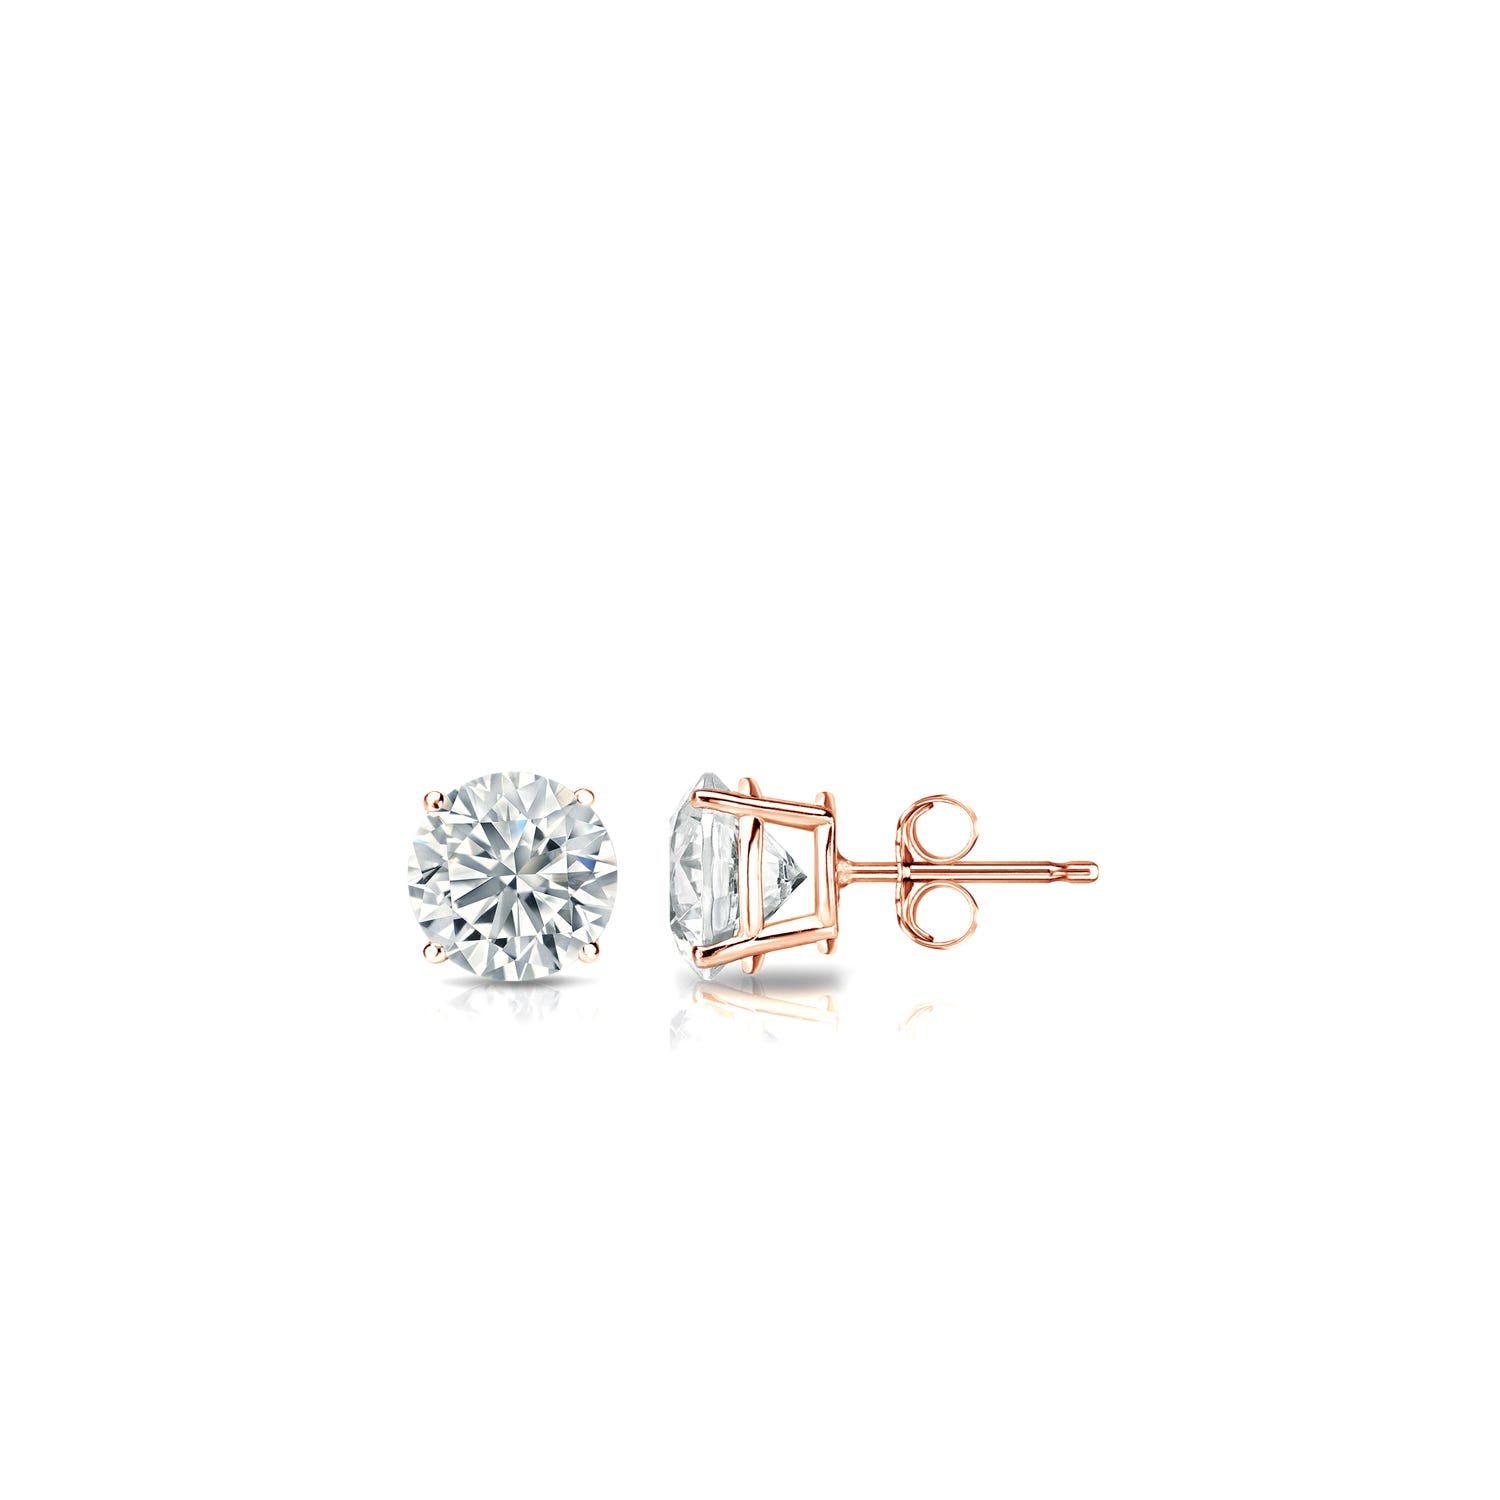 Diamond 1/10ctw. Round Solitaire Stud Earrings (I-J, I1) 14k Rose Gold